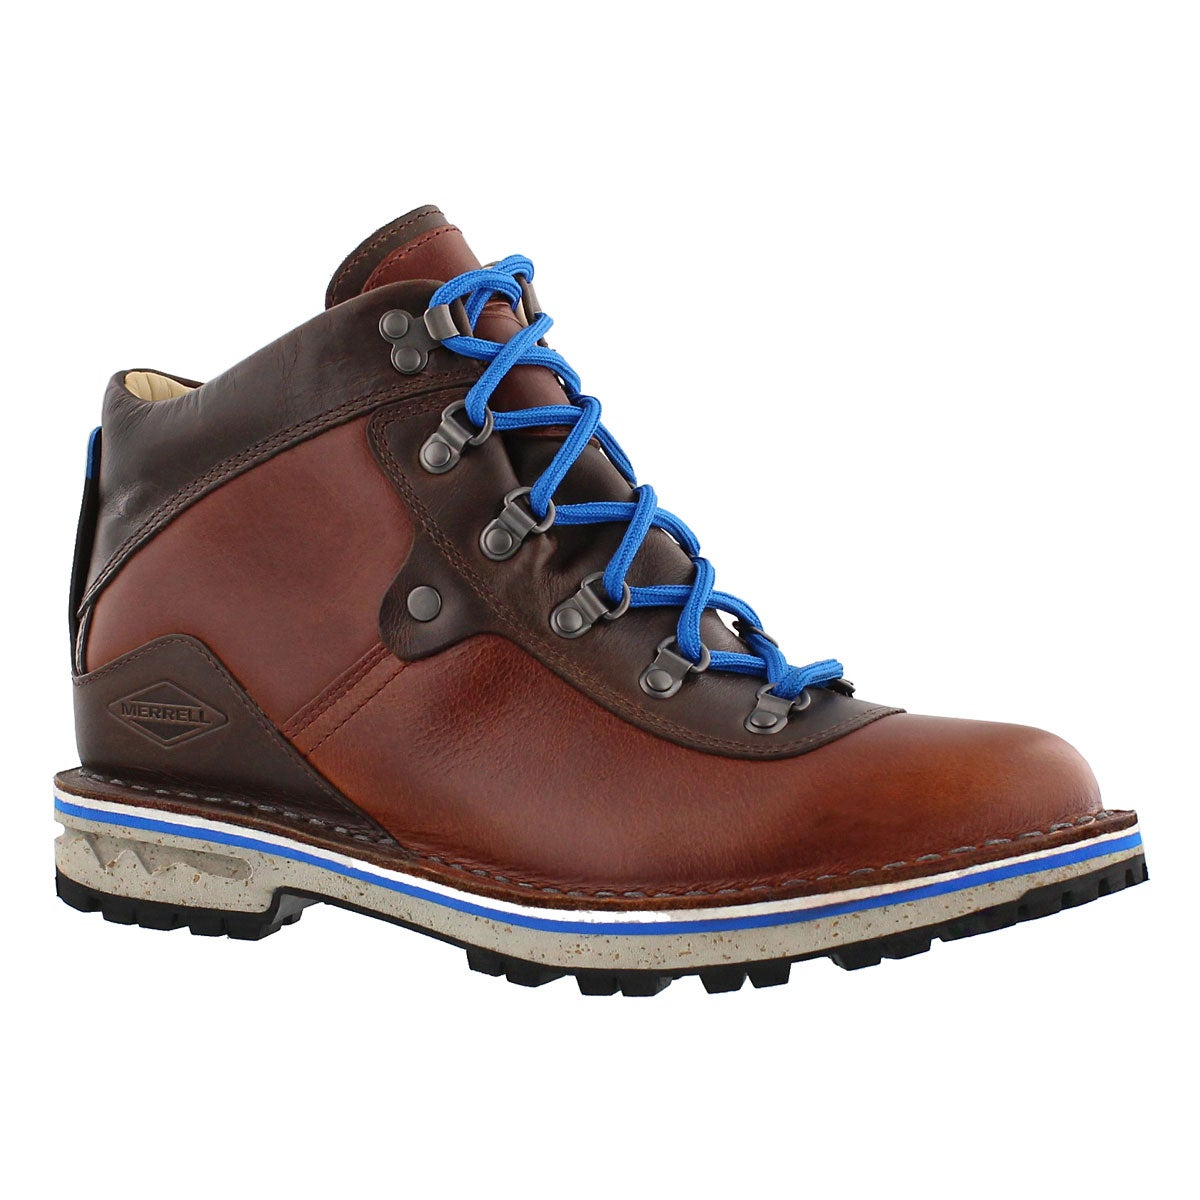 Lds Sugarbush sunned wtpf hiking boot